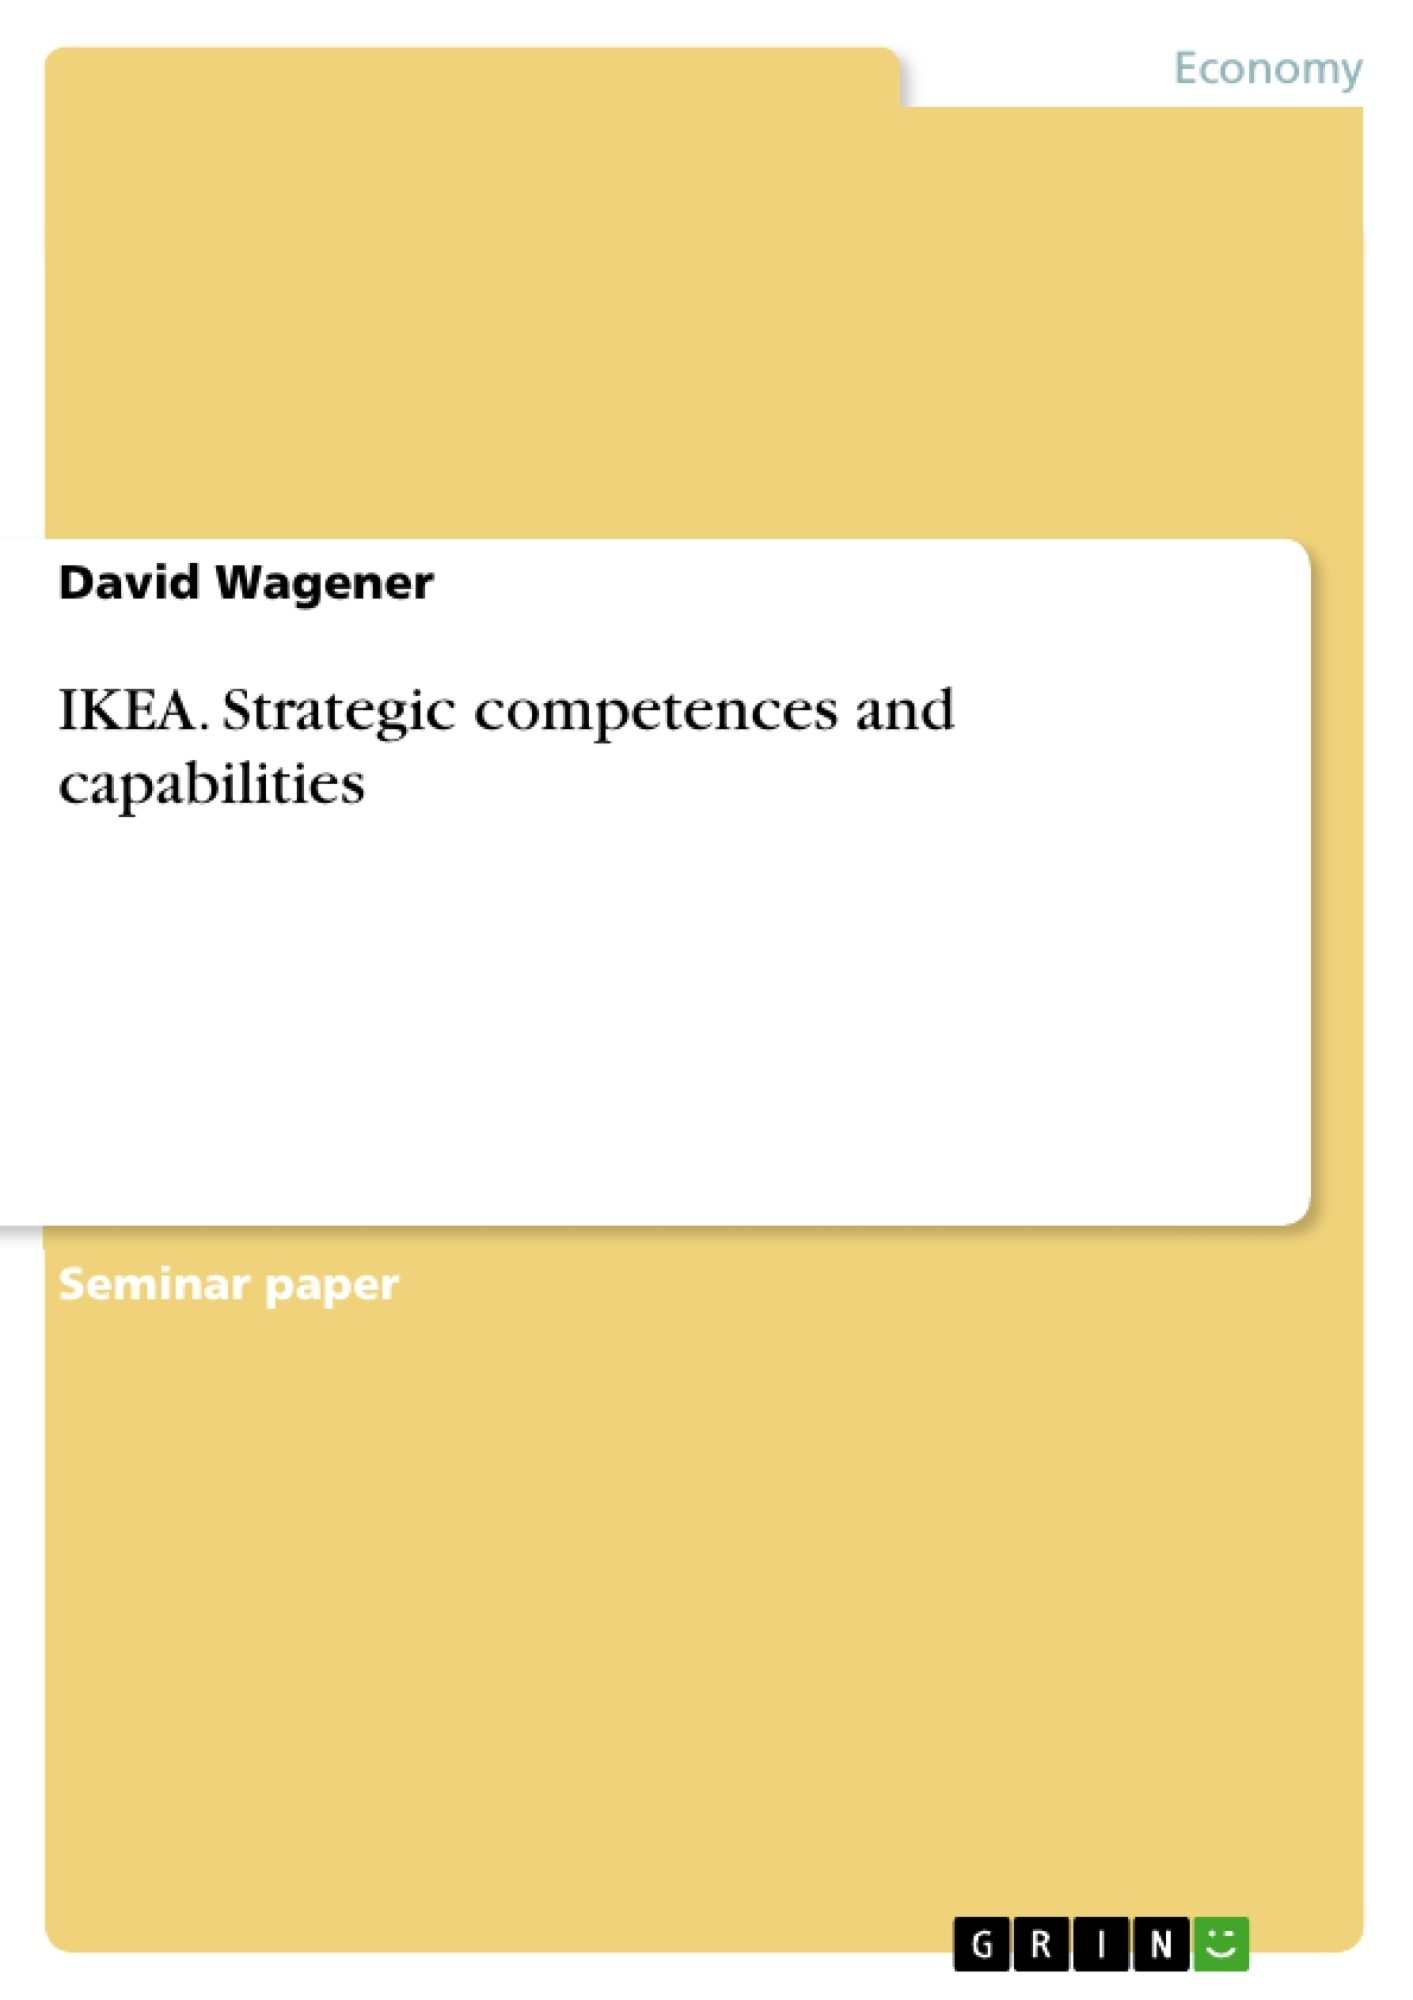 Title: IKEA. Strategic competences and capabilities